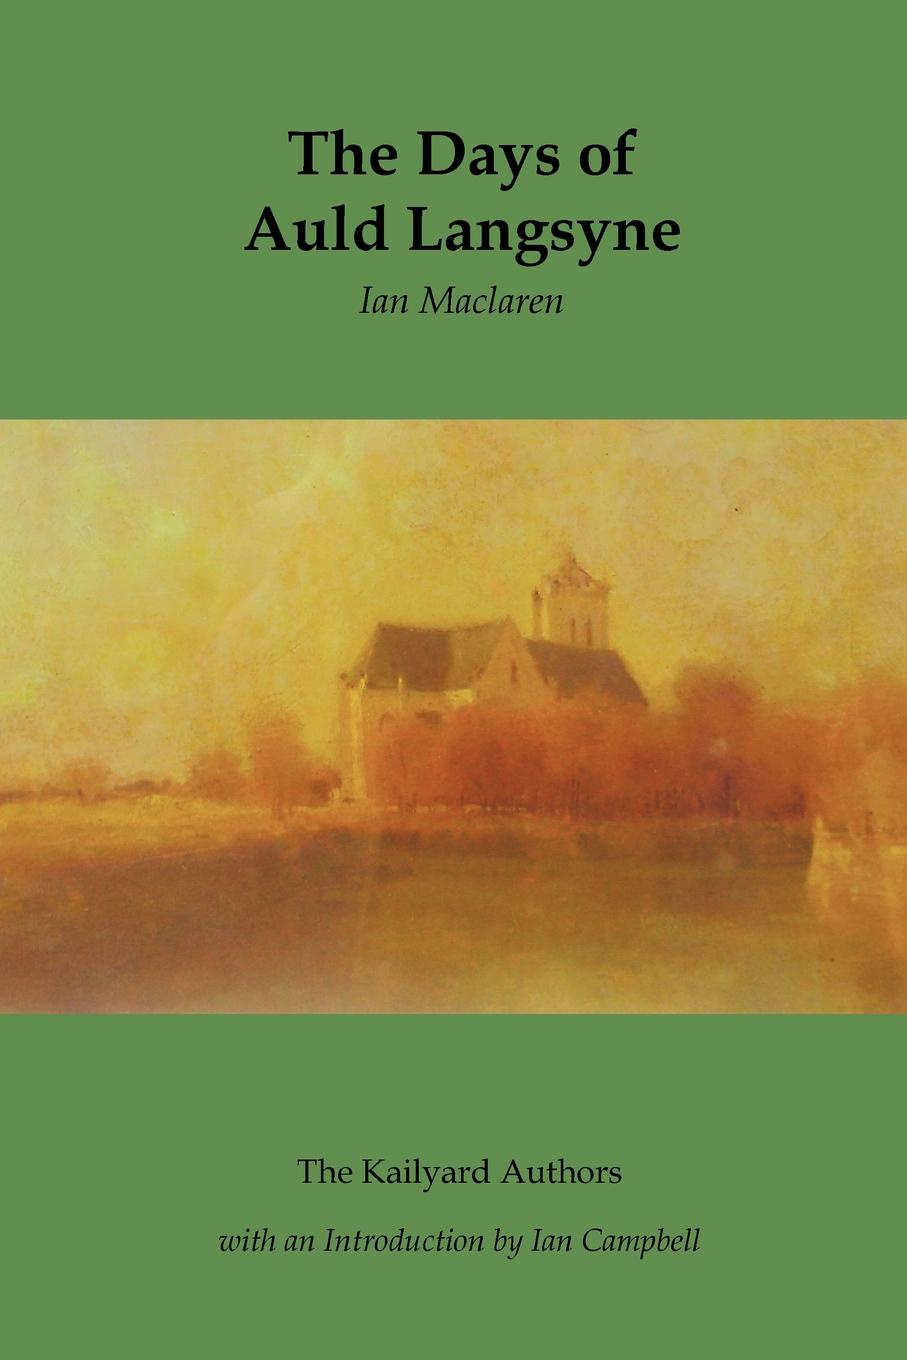 Ian MacLaren The Days of Auld Langsyne john logan campbell poenamo sketches of the early days in new zealand romance and reality of antipodean life in the infancy of a new colony